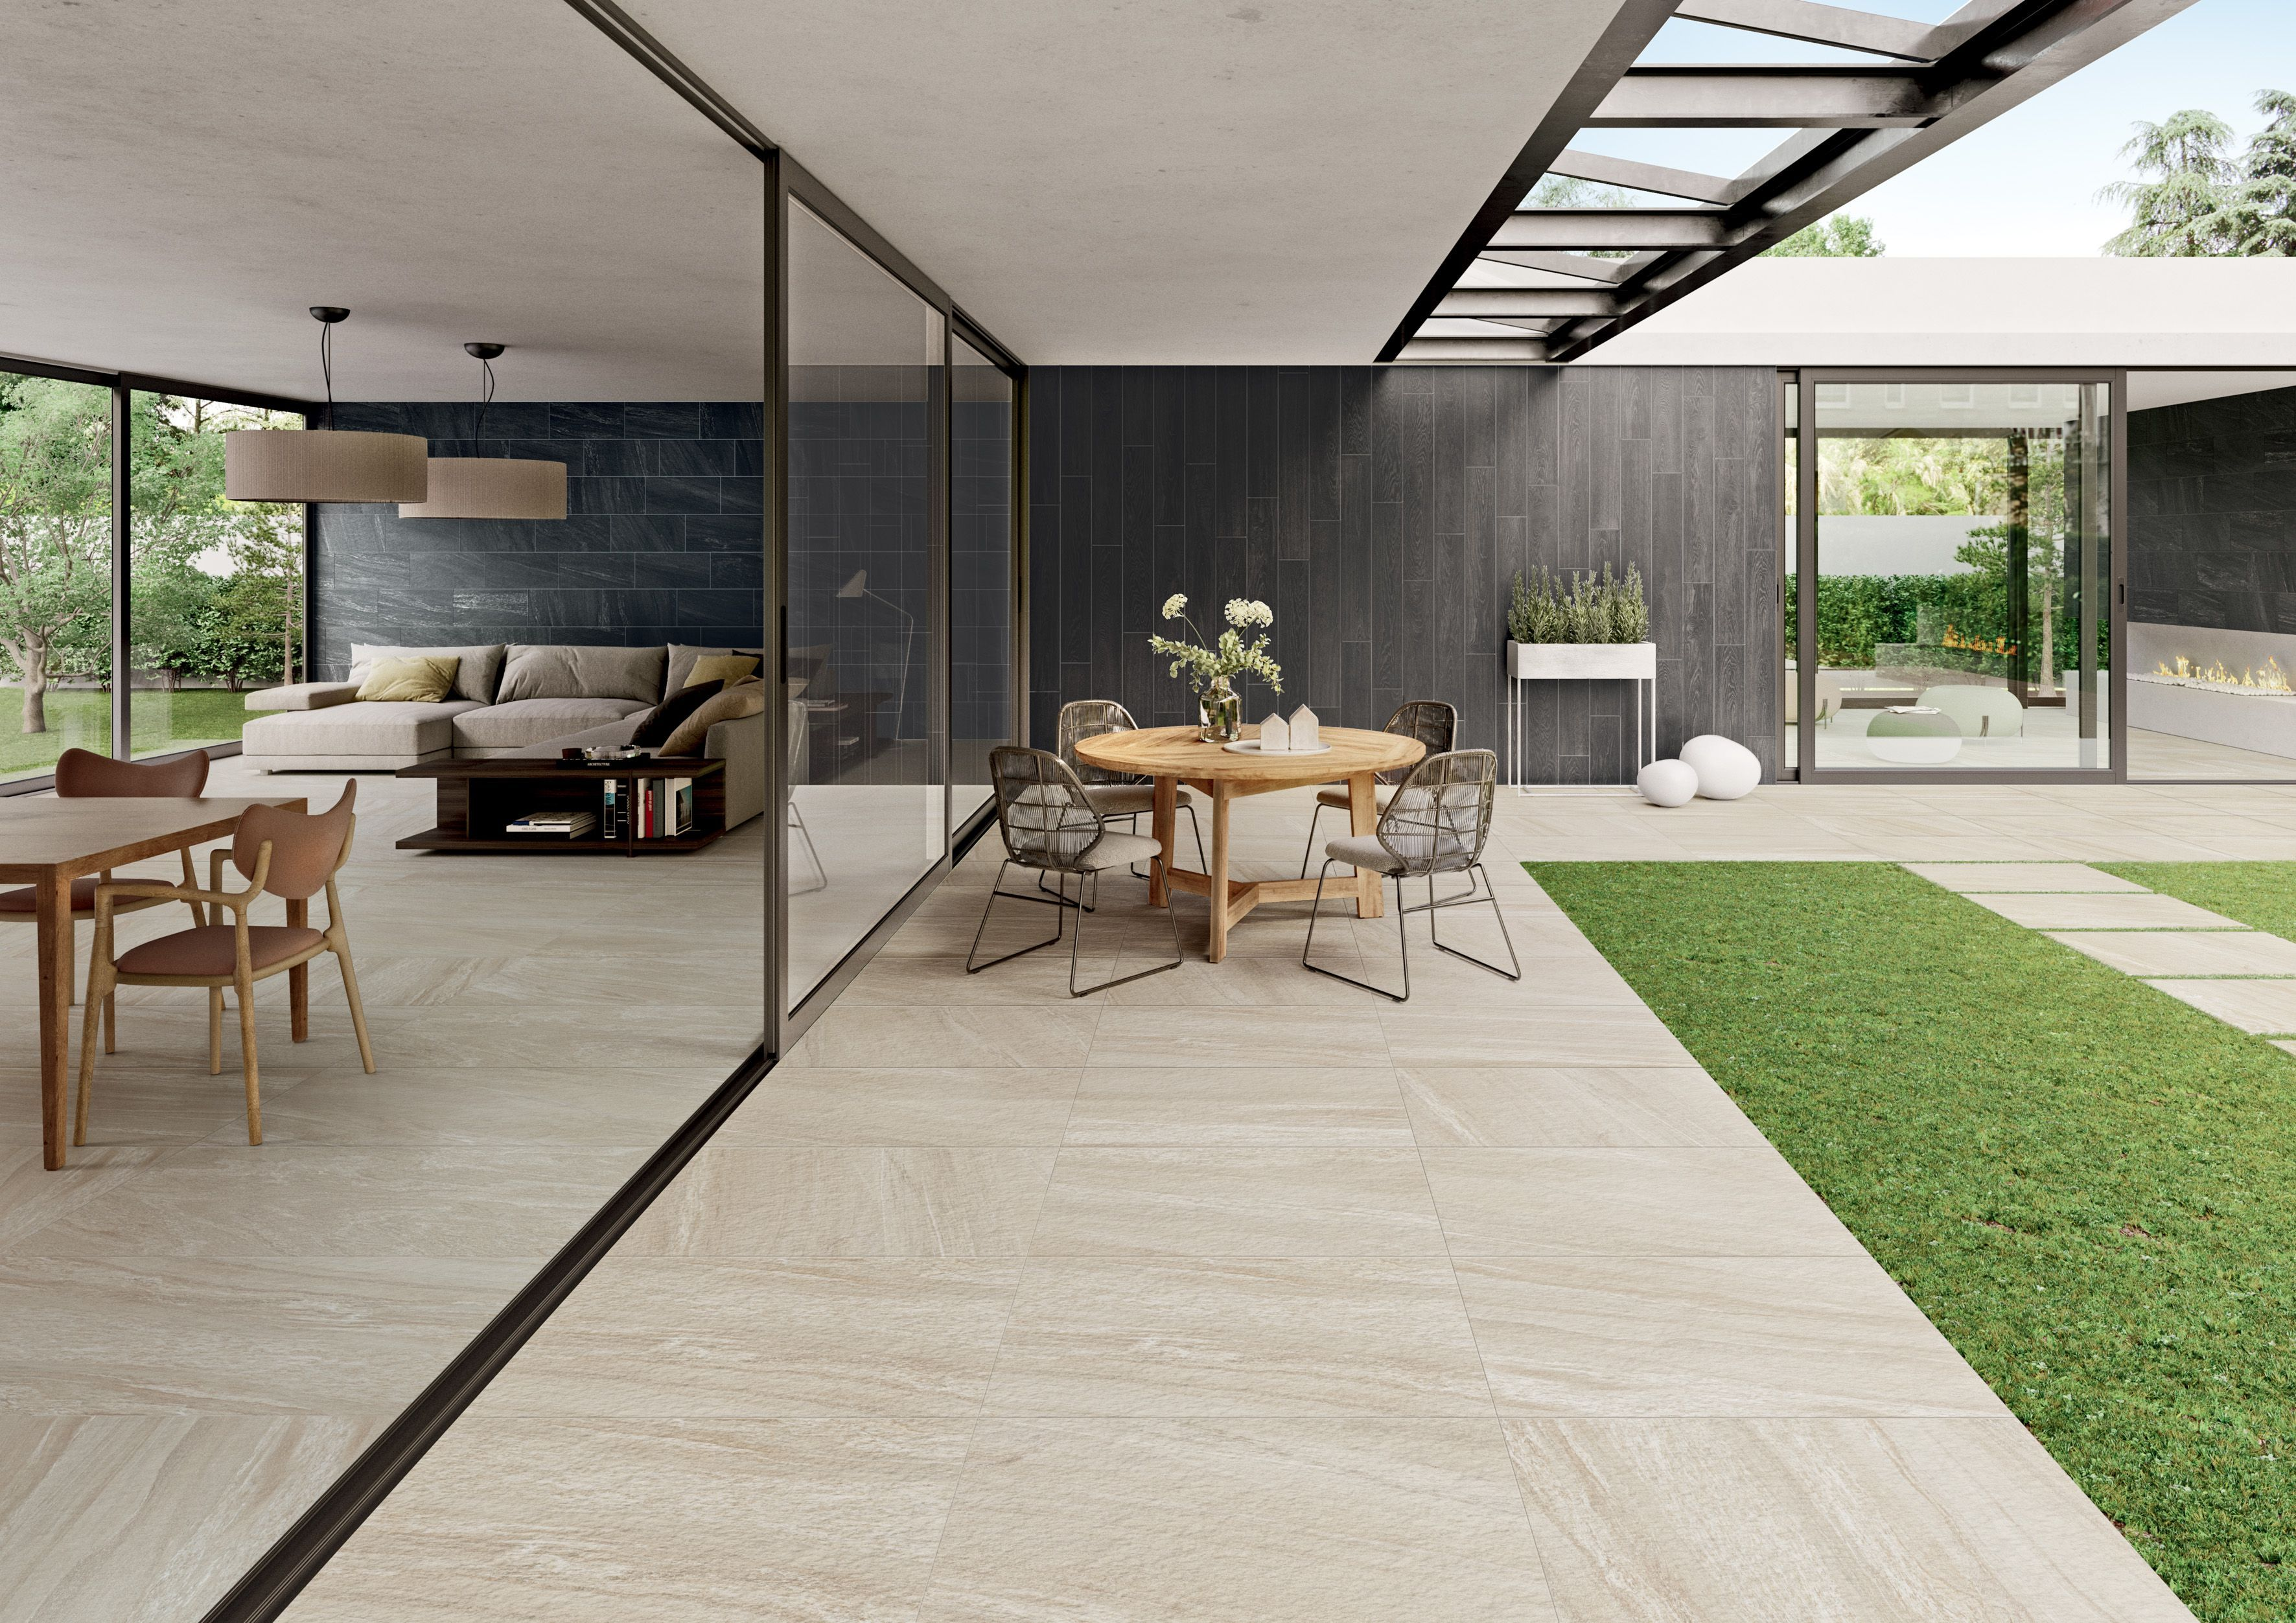 Indoor Outdoor Patio Area With Porcelain Paver Flooring With